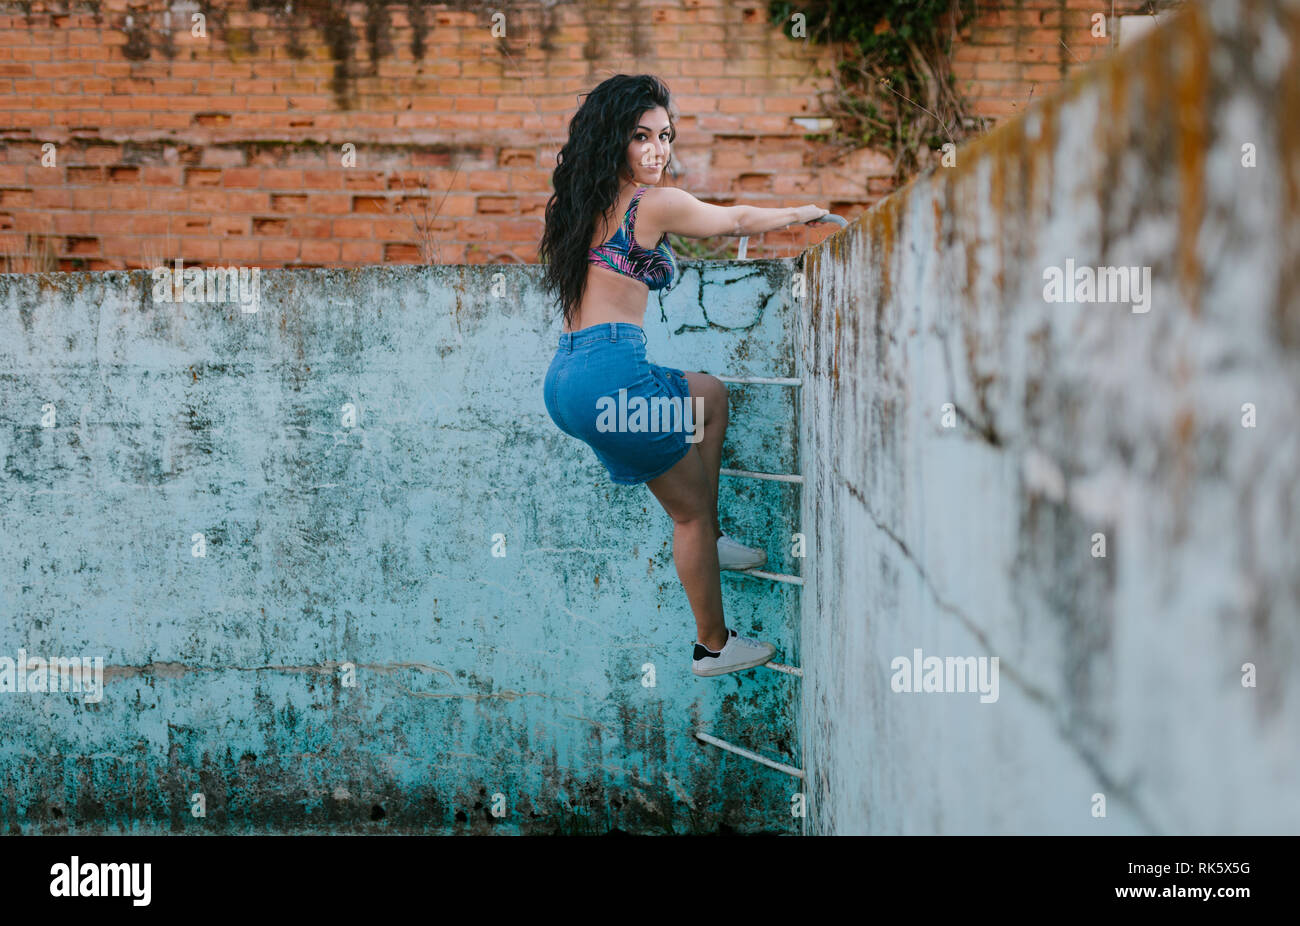 Smiling young brunette woman with bikini in an old empty pool climbing the ladder - Stock Image